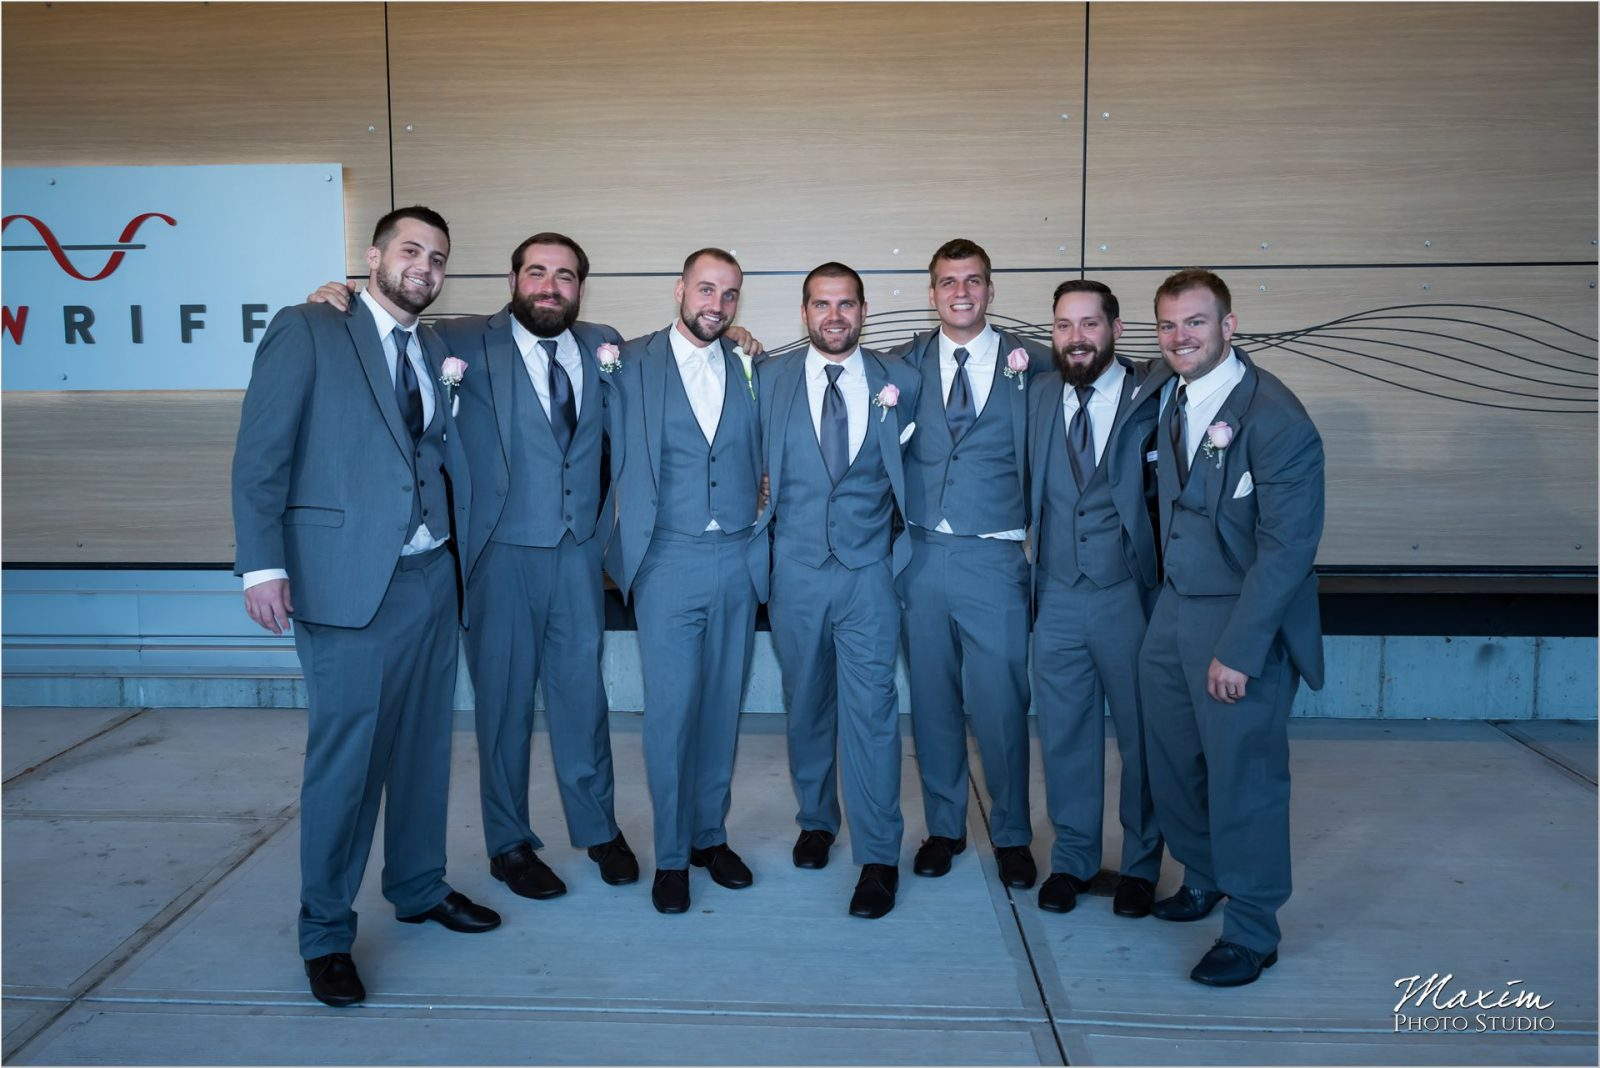 New Riff Wedding groomsmen